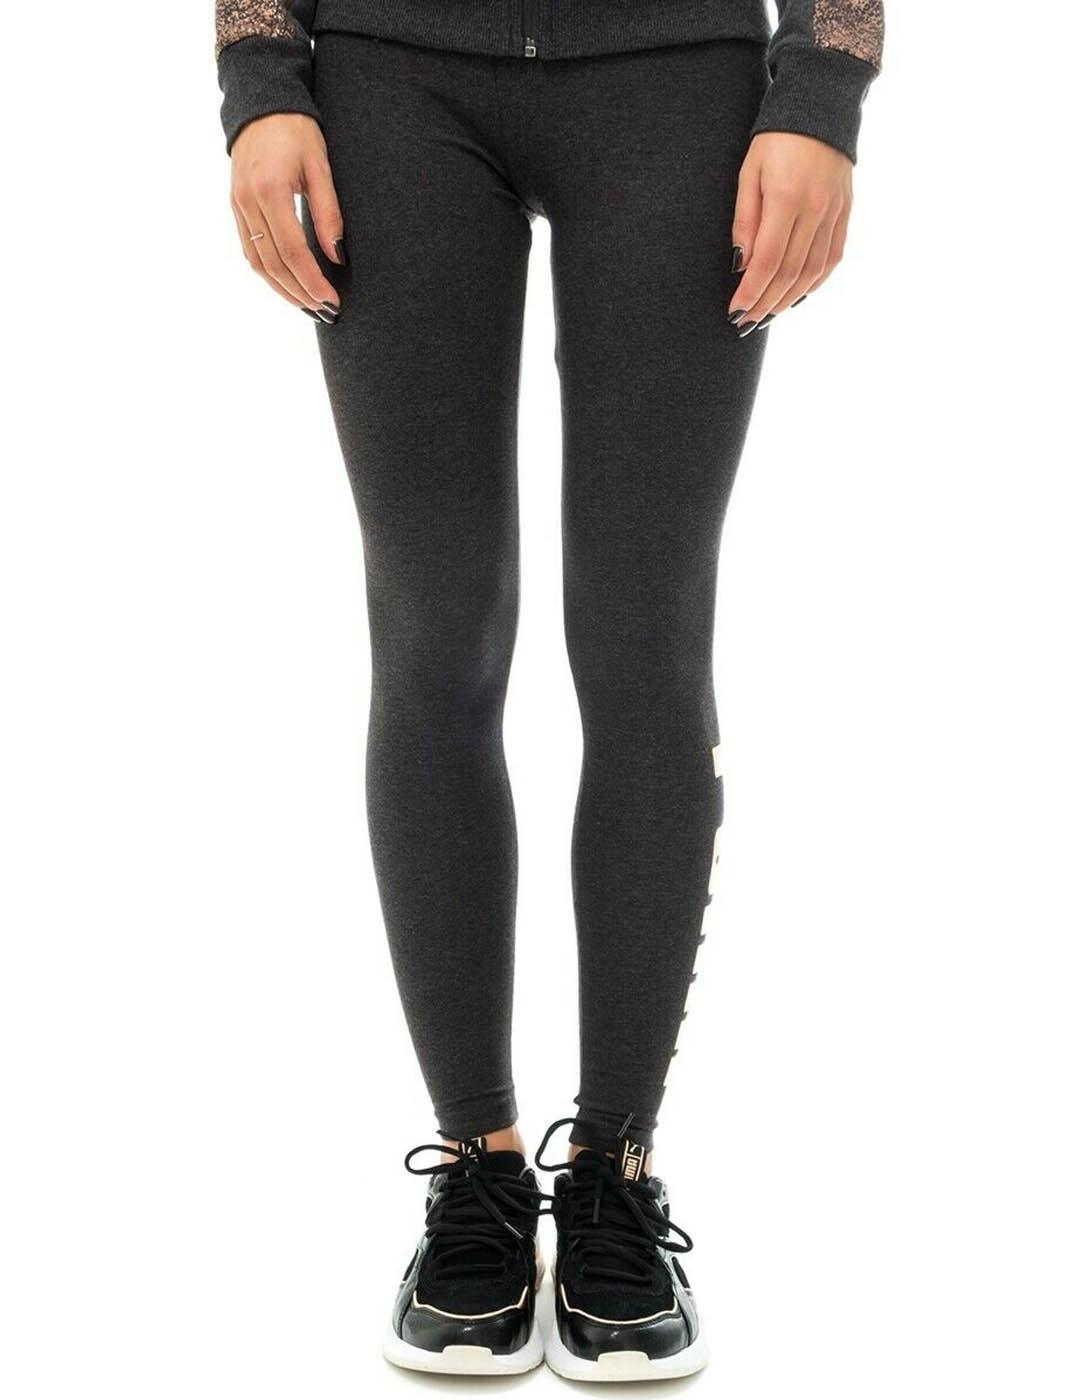 MALLA PUMA HOLIDAY PACK LEGGINGS